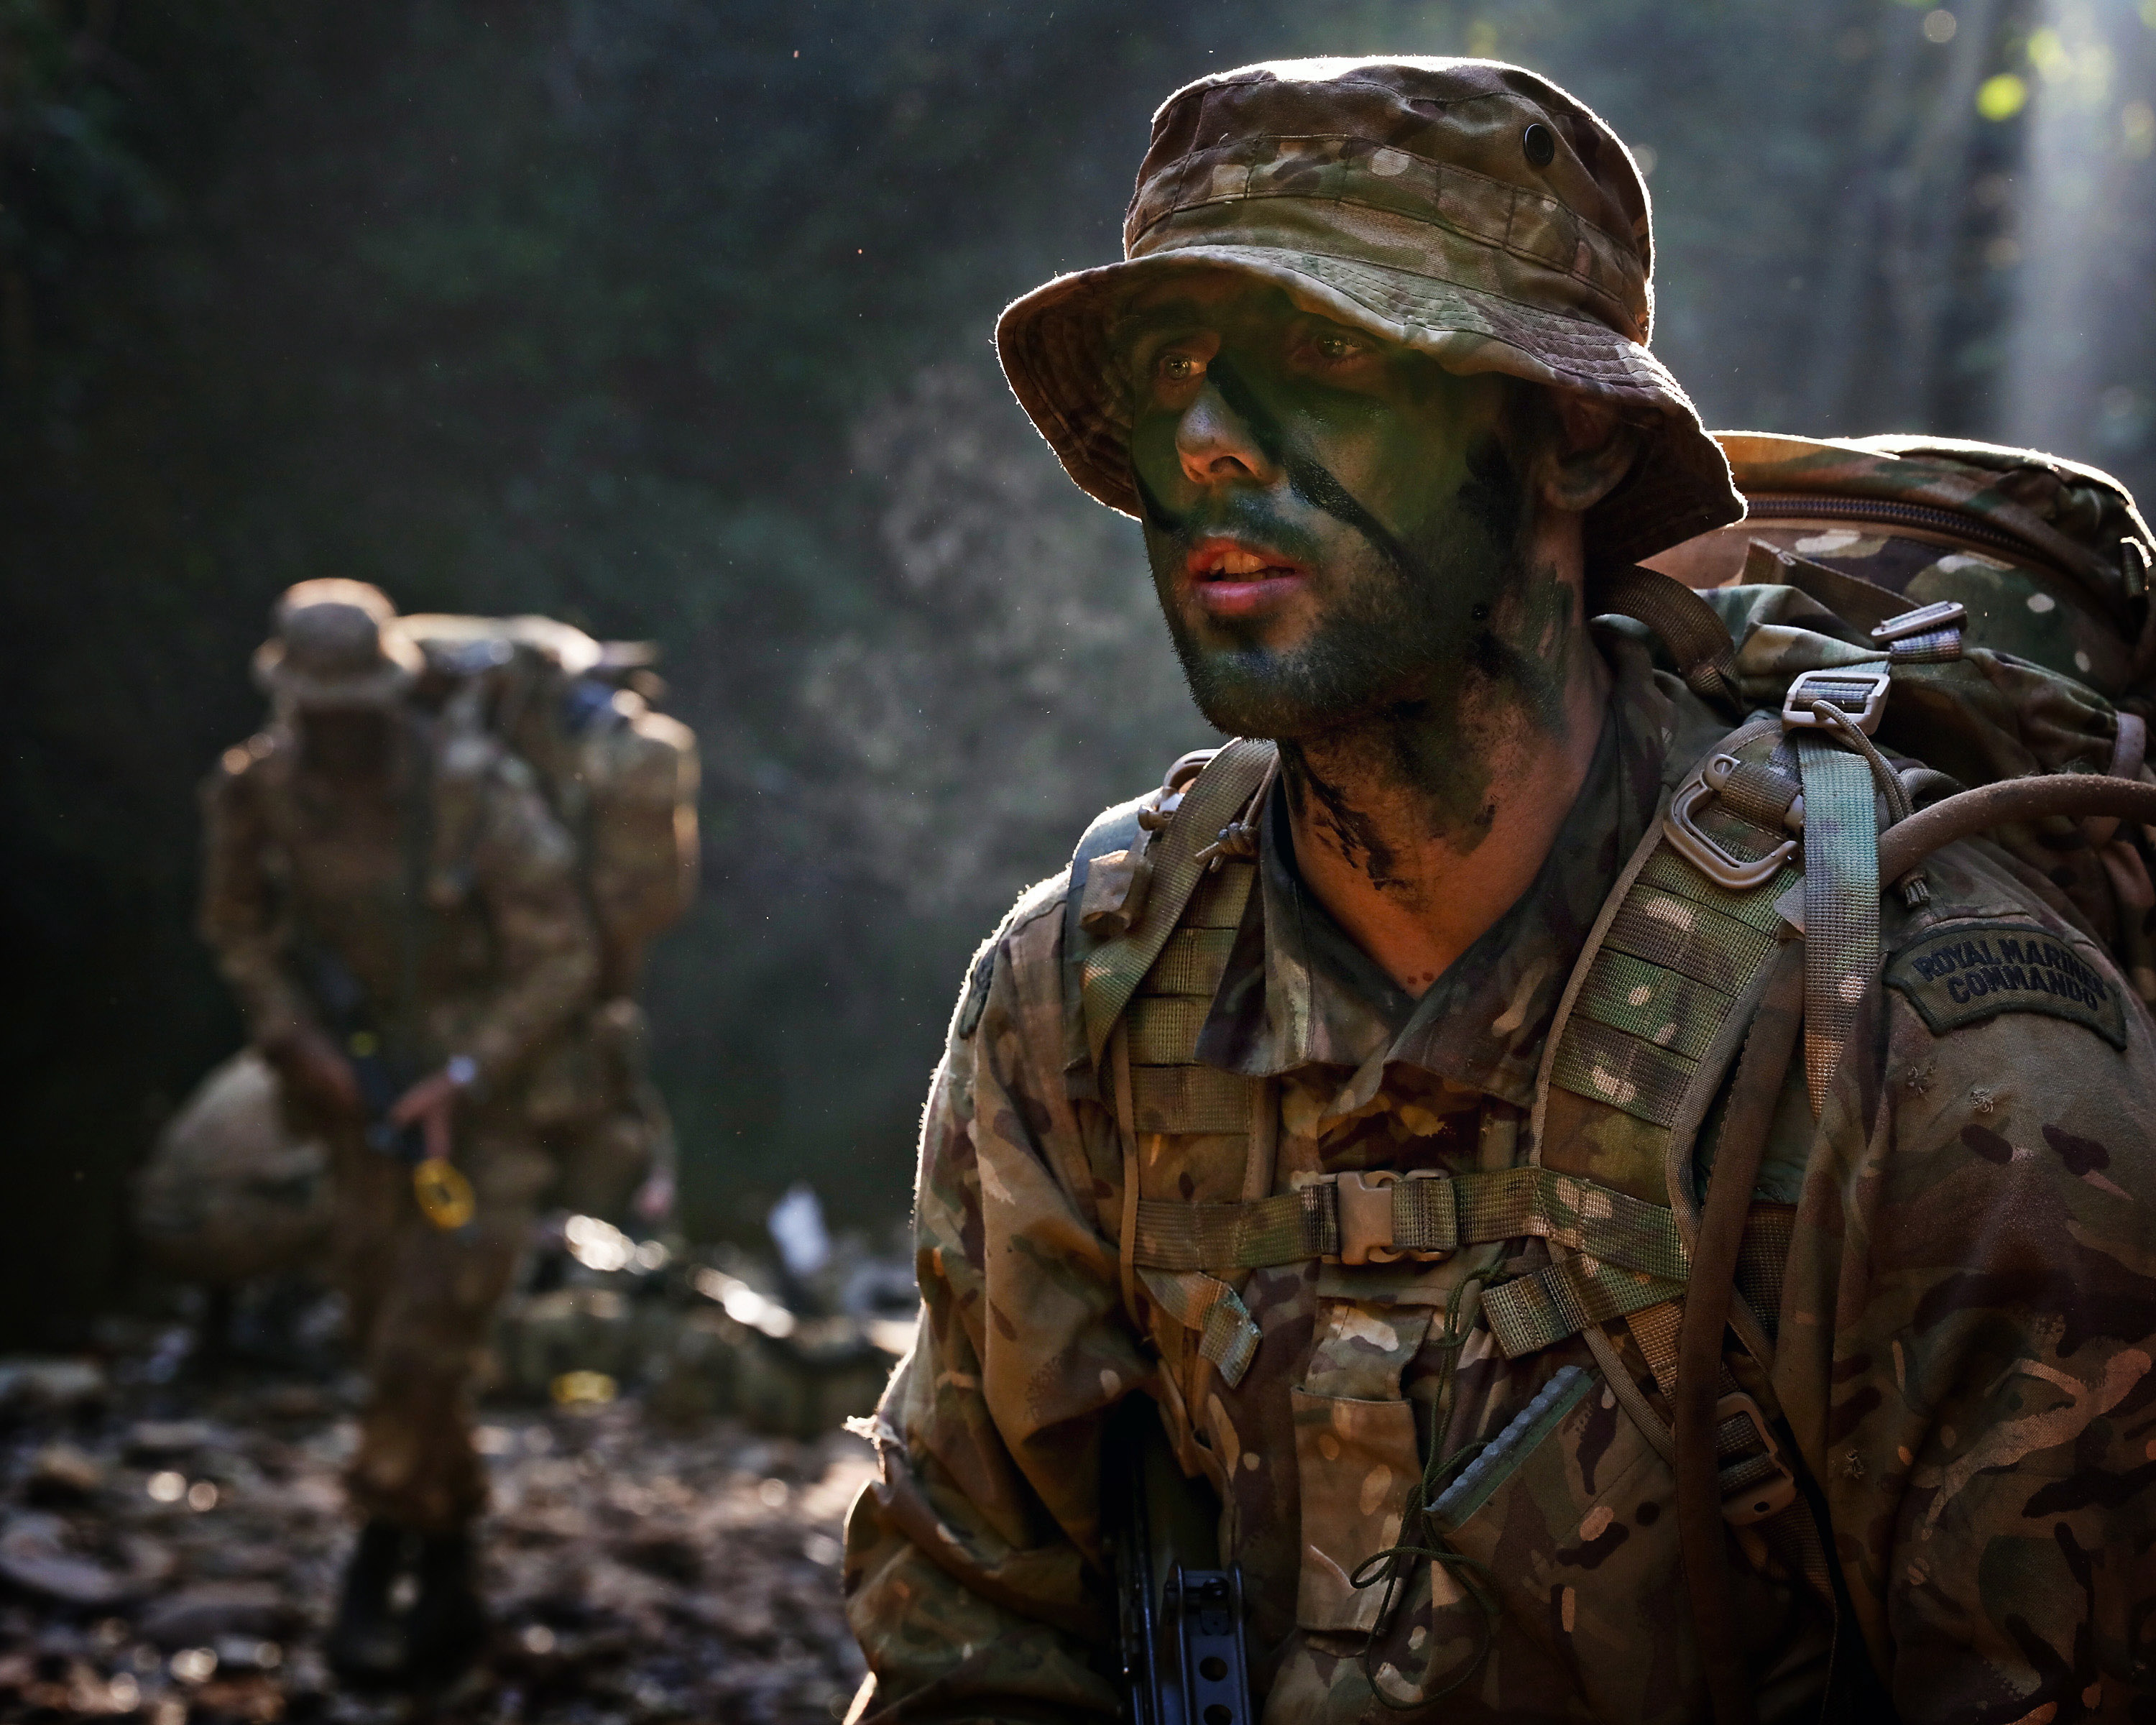 Royal Marines in Belize, welcome to the jungle!